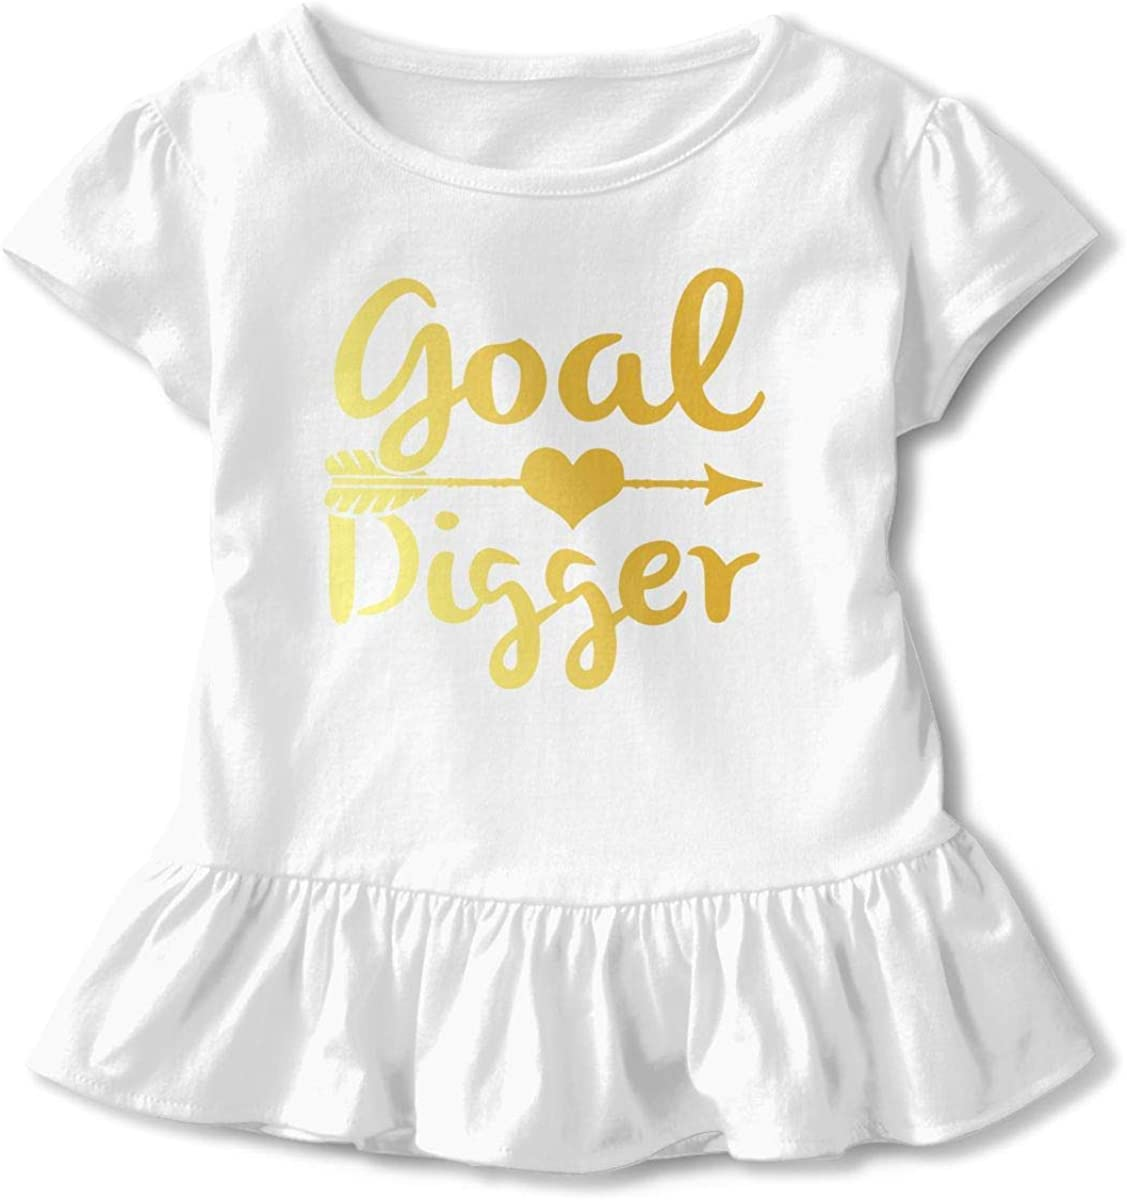 HelloWorlduk Toddler Baby Girl Goal Digger Funny Short Sleeve Cotton T Shirts Basic Tops Tee Clothes